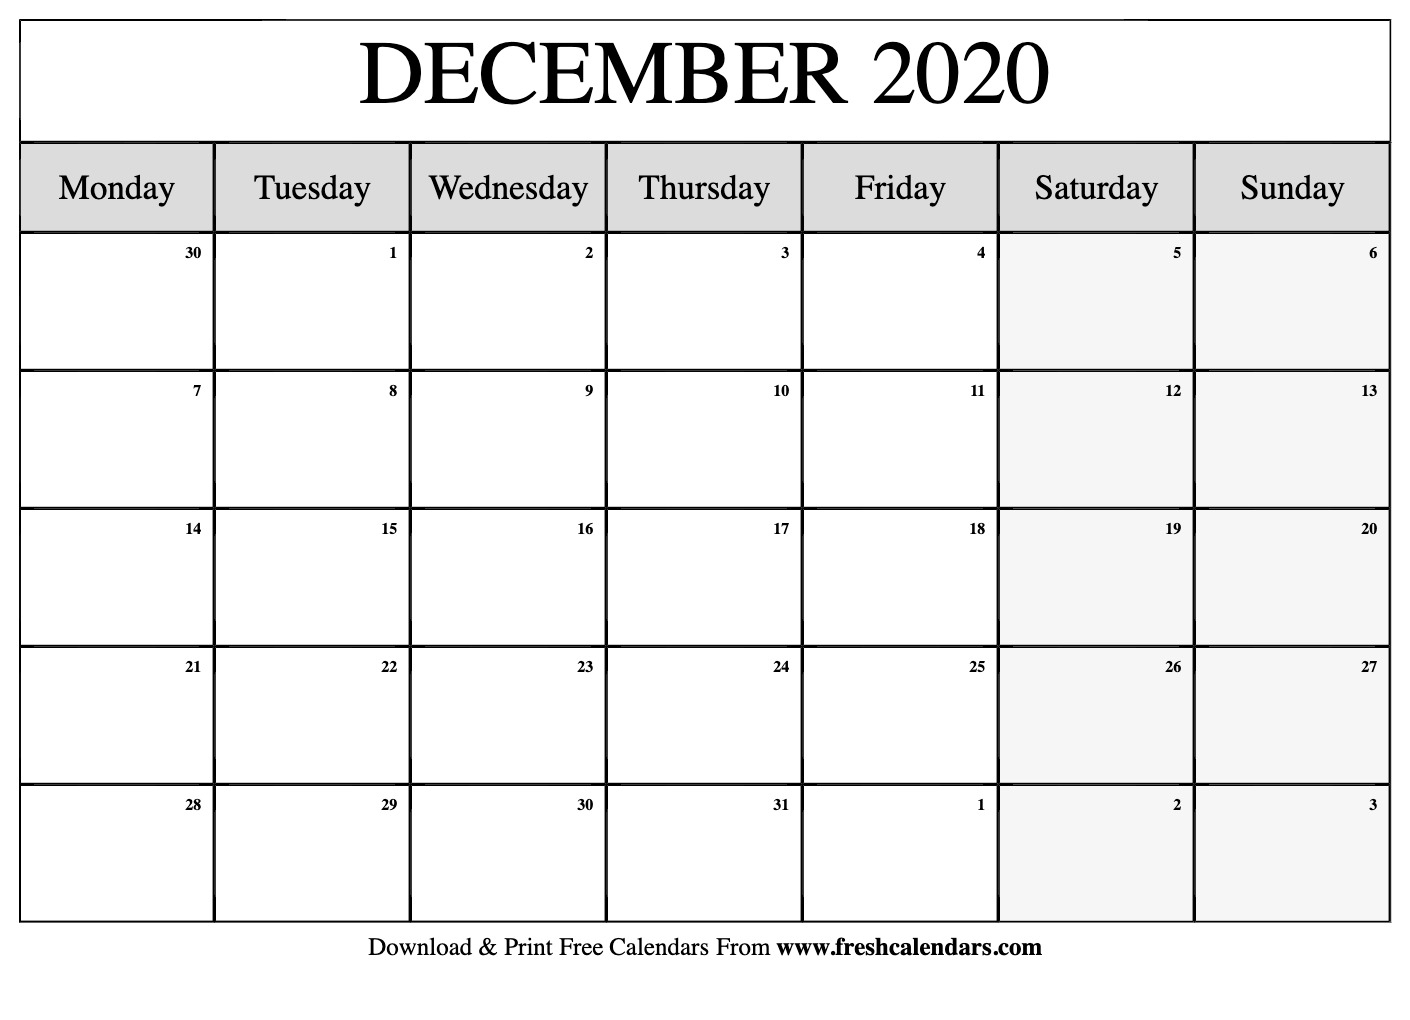 Free Printable December 2020 Calendar with regard to 123 Calendars December 2020